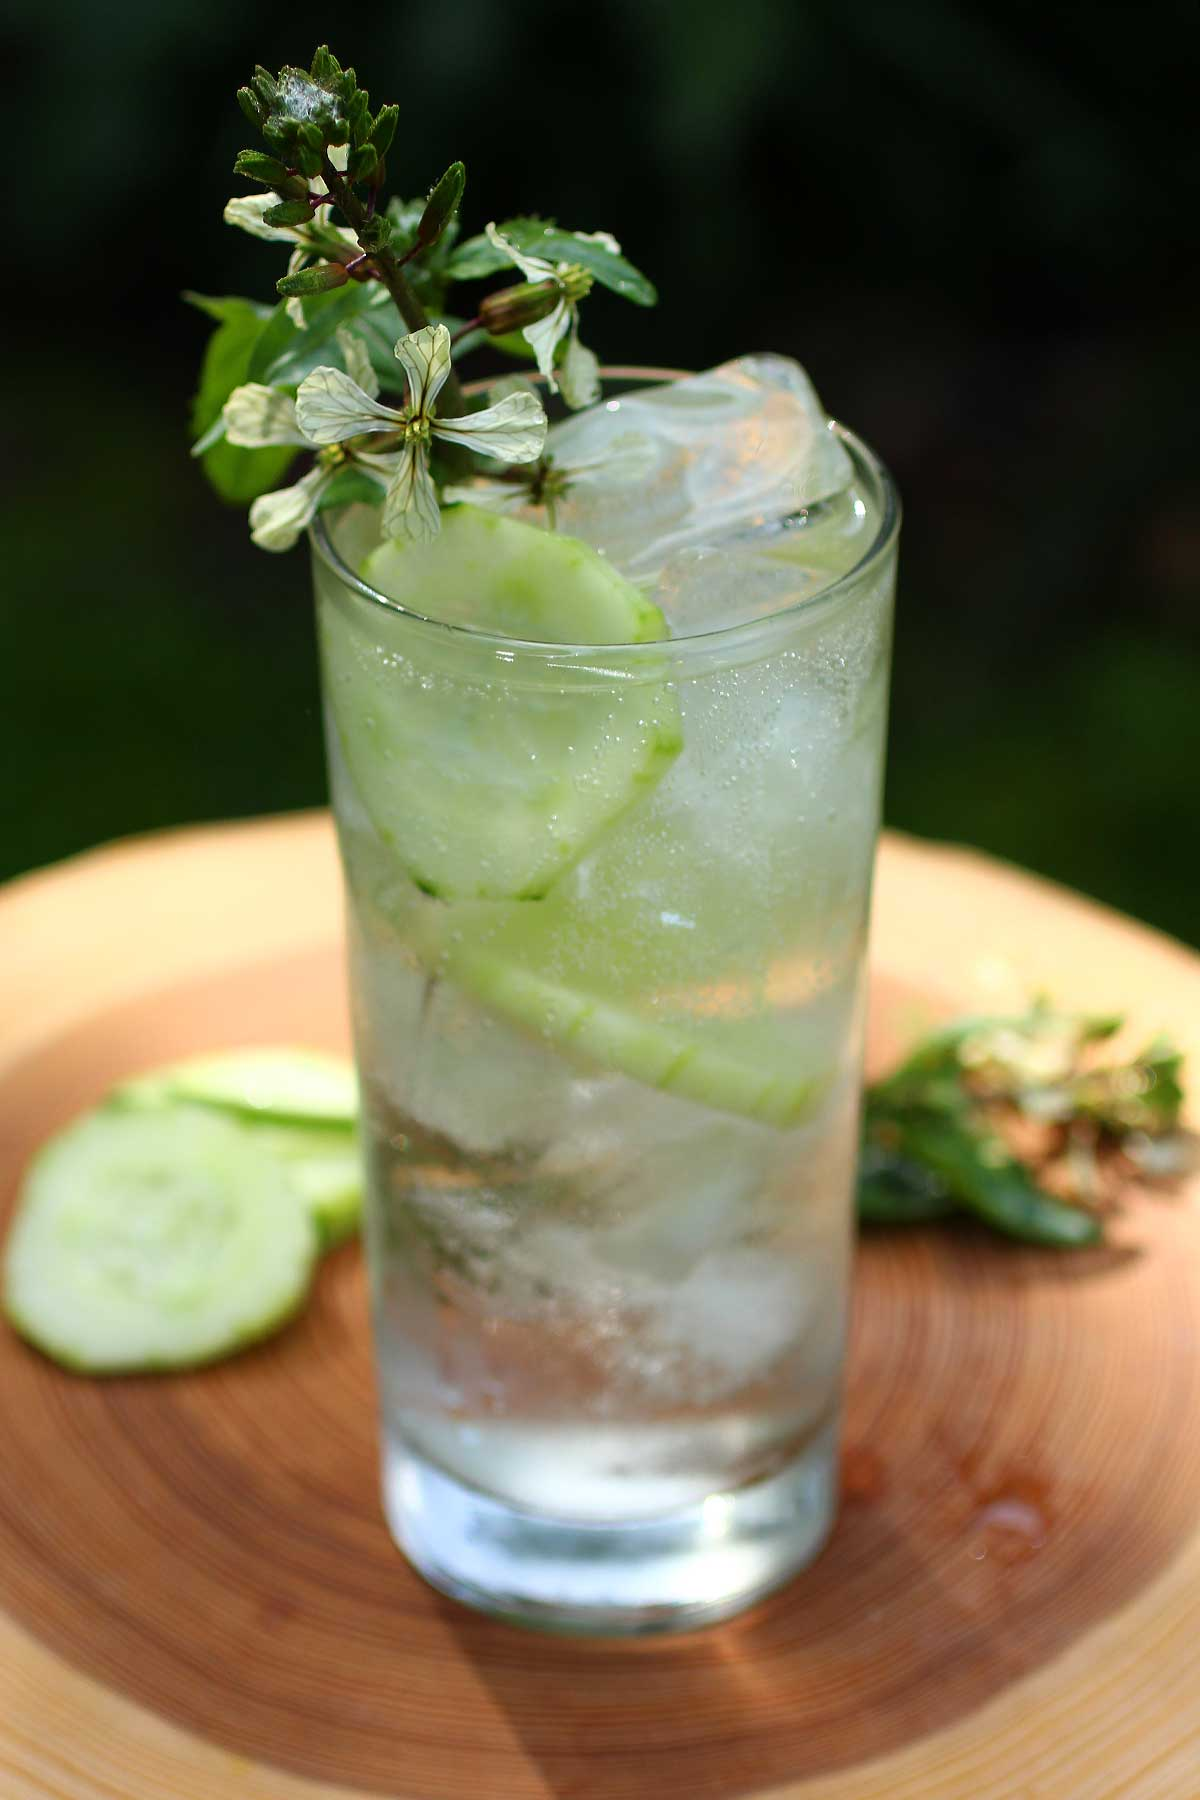 ... began with the large aloha cucumber spritzer cucumber gin spritzer